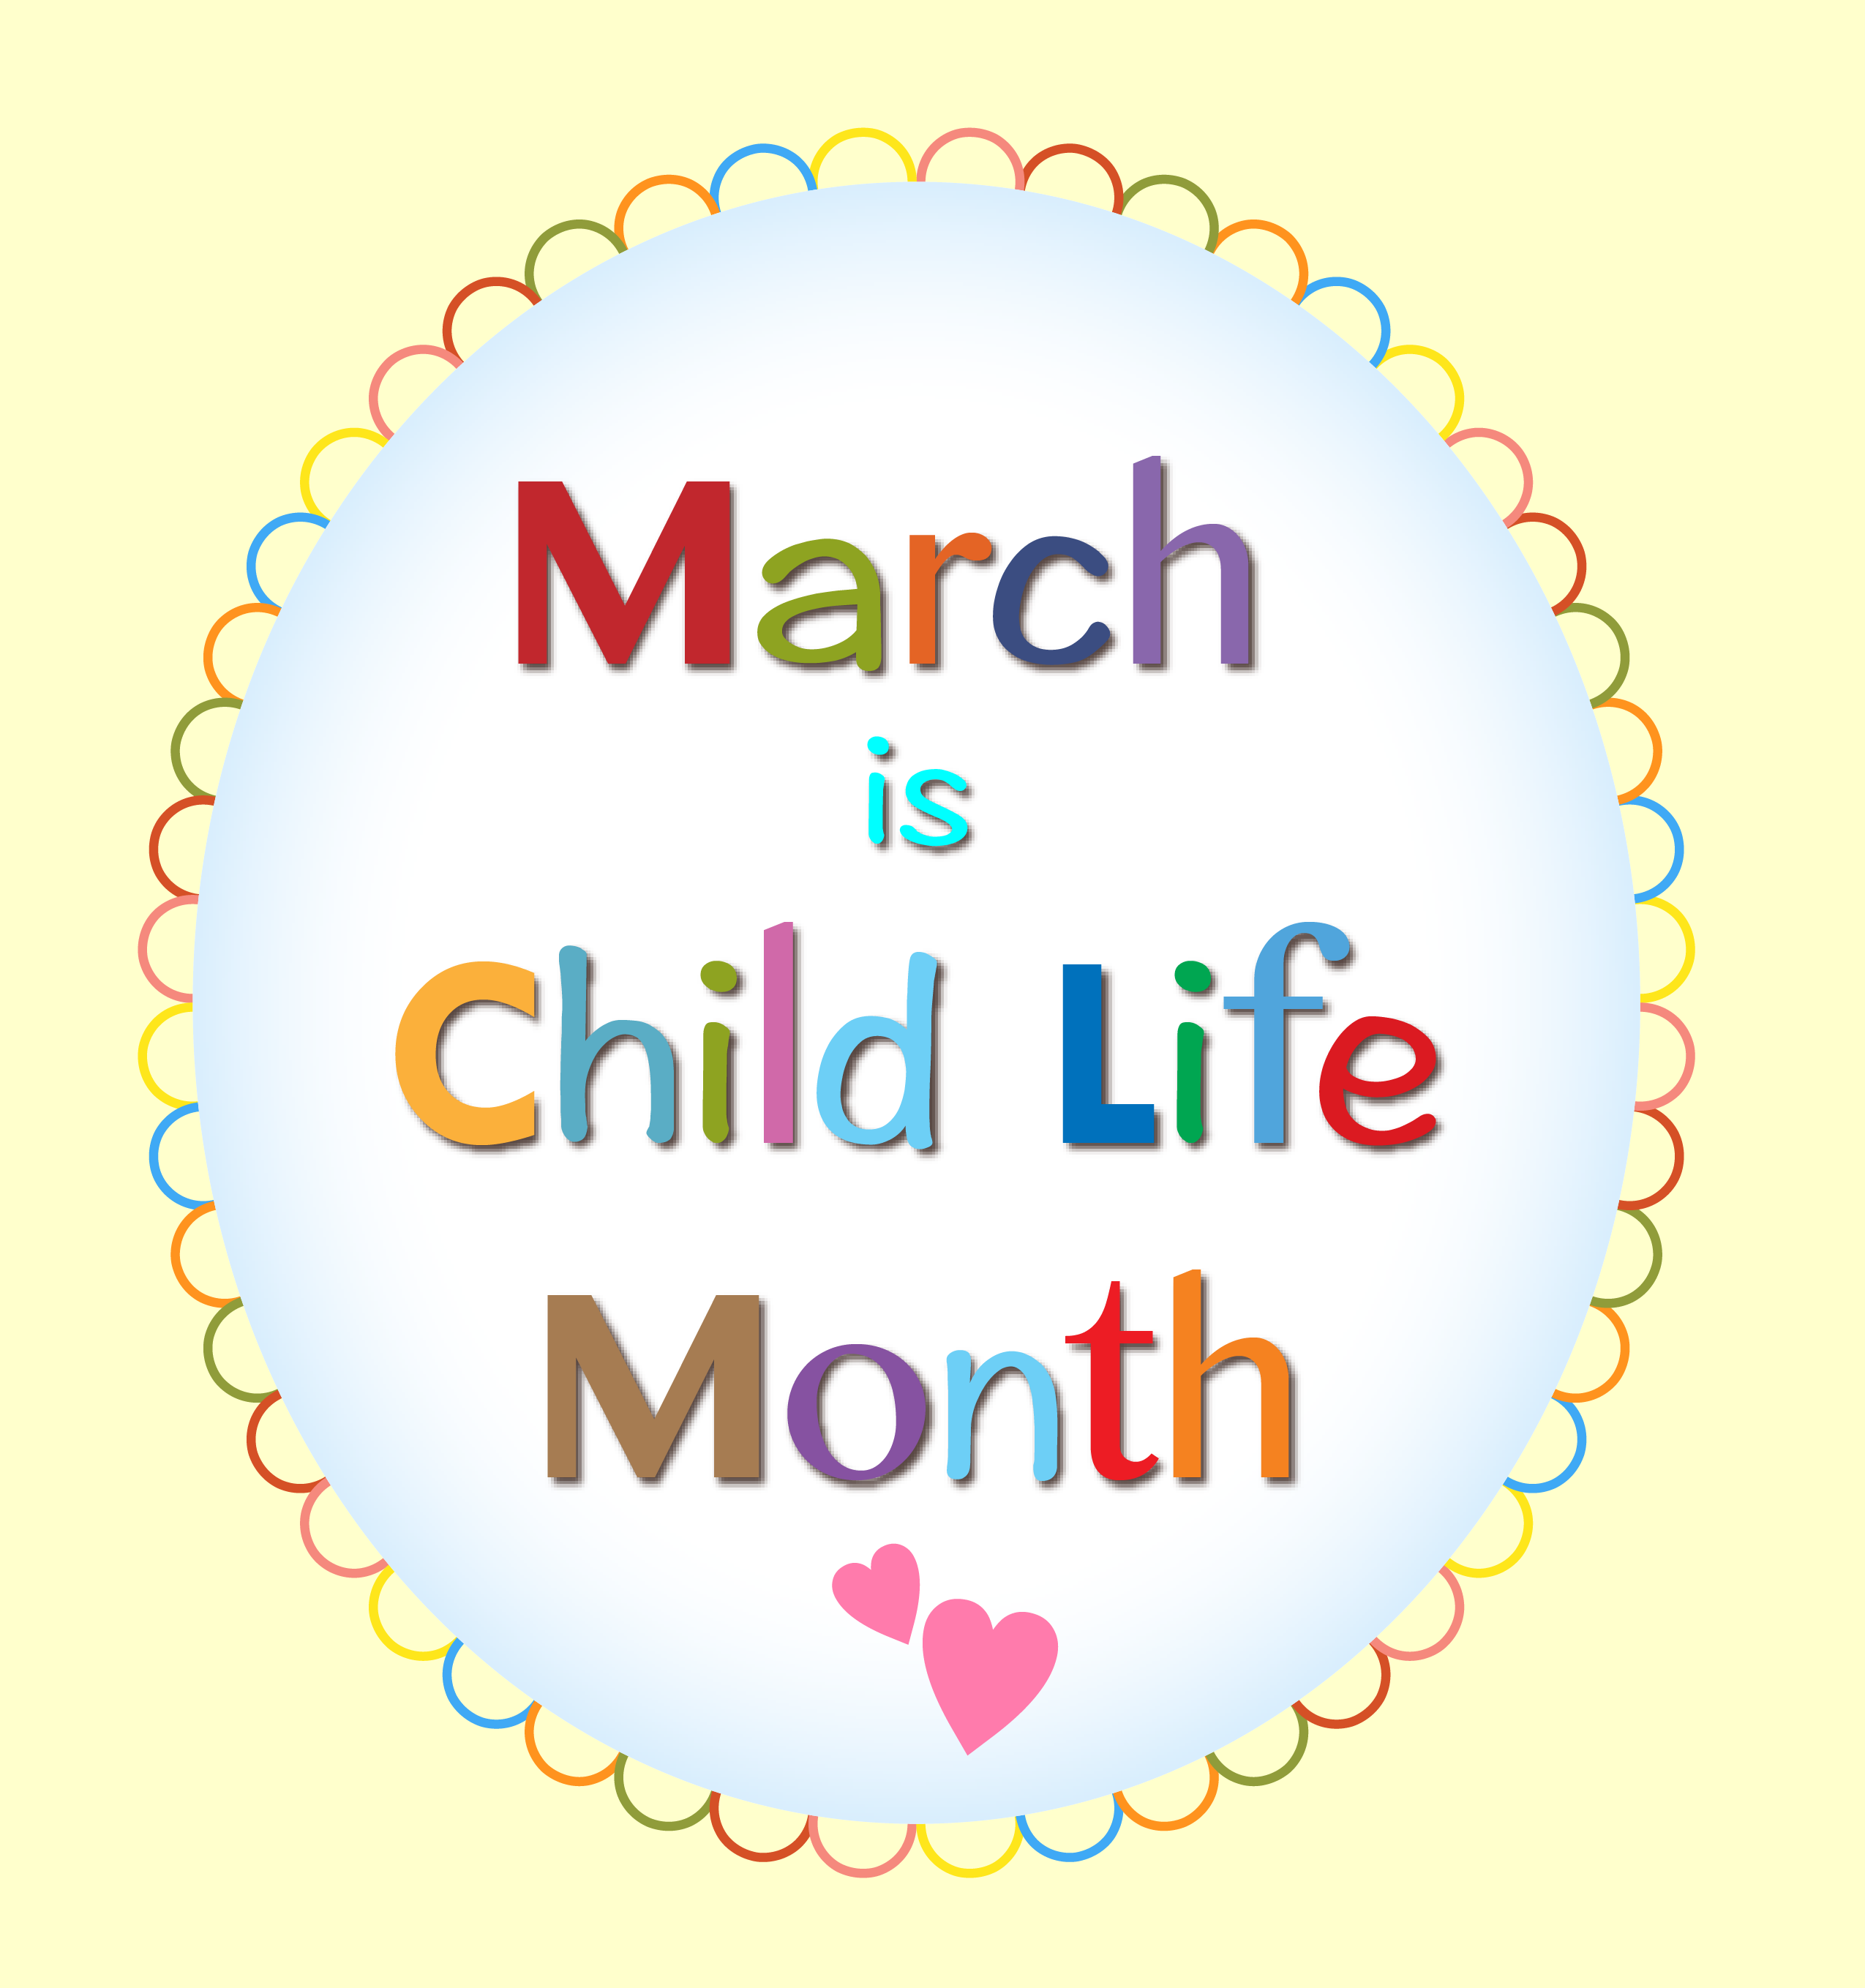 March is Child Life Month